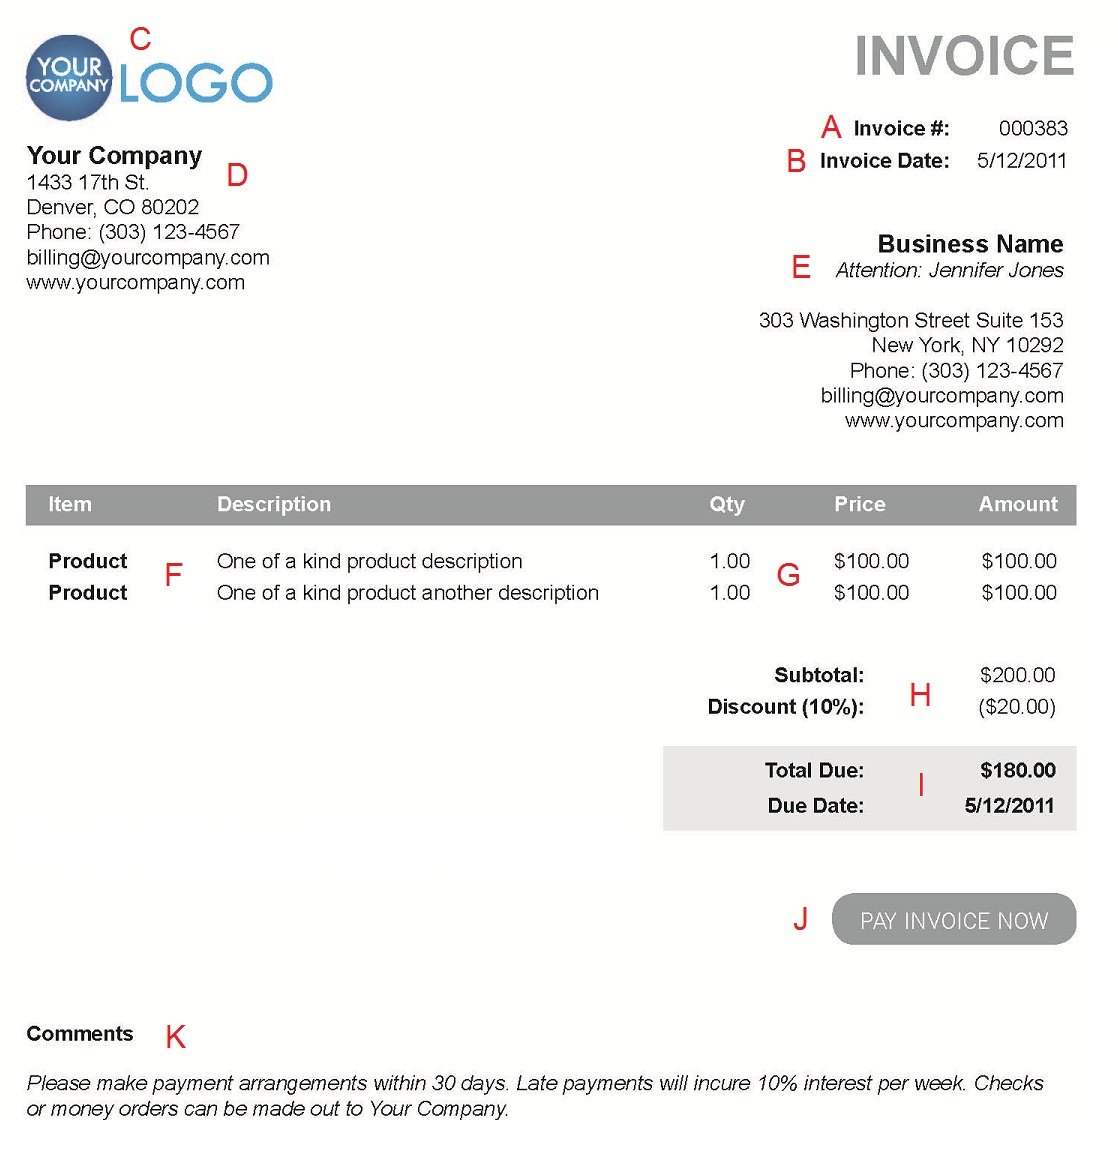 Breakupus  Splendid The  Different Sections Of An Electronic Payment Invoice With Foxy A  With Agreeable Blank Receipts Forms Also Miami Taxi Receipt In Addition Receipts For Tax Deductions And Example Receipts As Well As Please Kindly Acknowledge Receipt Of This Email Additionally Professional Receipt Template From Paysimplecom With Breakupus  Foxy The  Different Sections Of An Electronic Payment Invoice With Agreeable A  And Splendid Blank Receipts Forms Also Miami Taxi Receipt In Addition Receipts For Tax Deductions From Paysimplecom